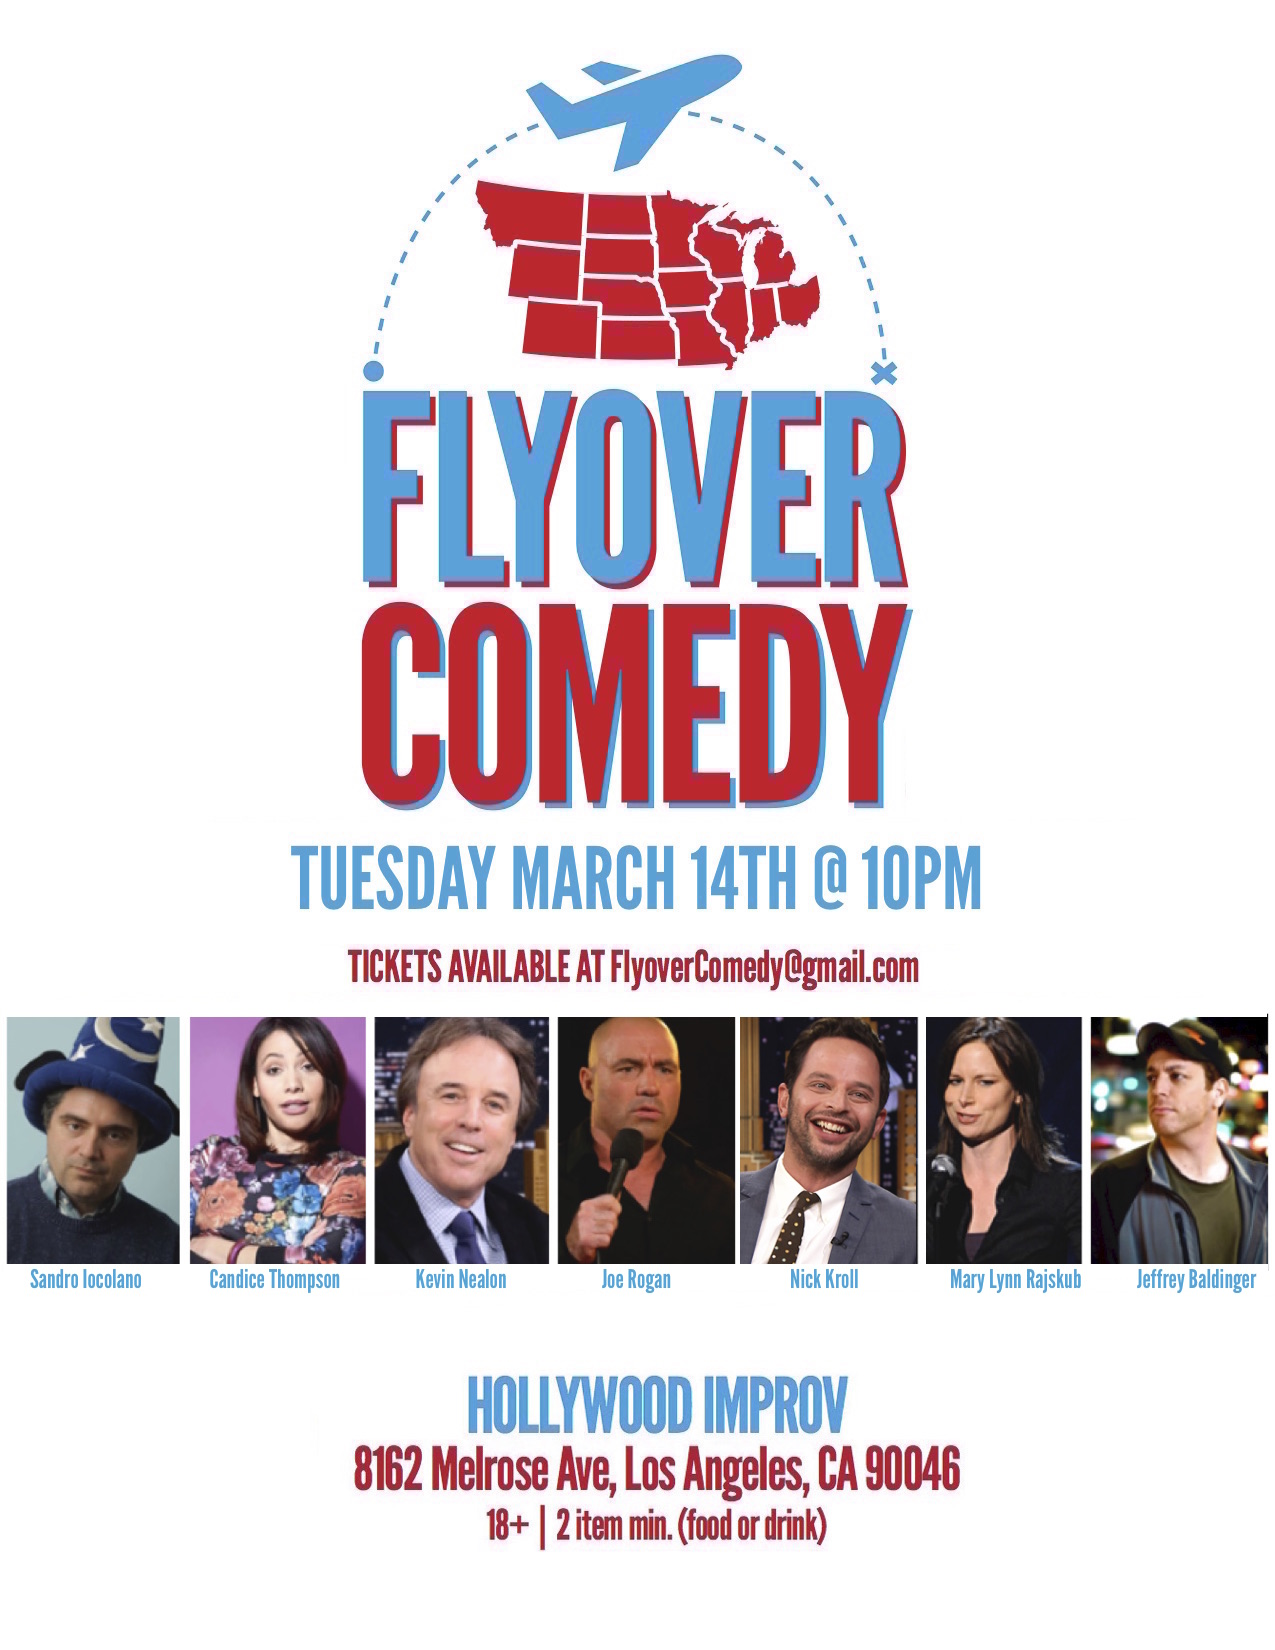 51. Flyover Comedy March 14th 2017 Bday Show.jpeg